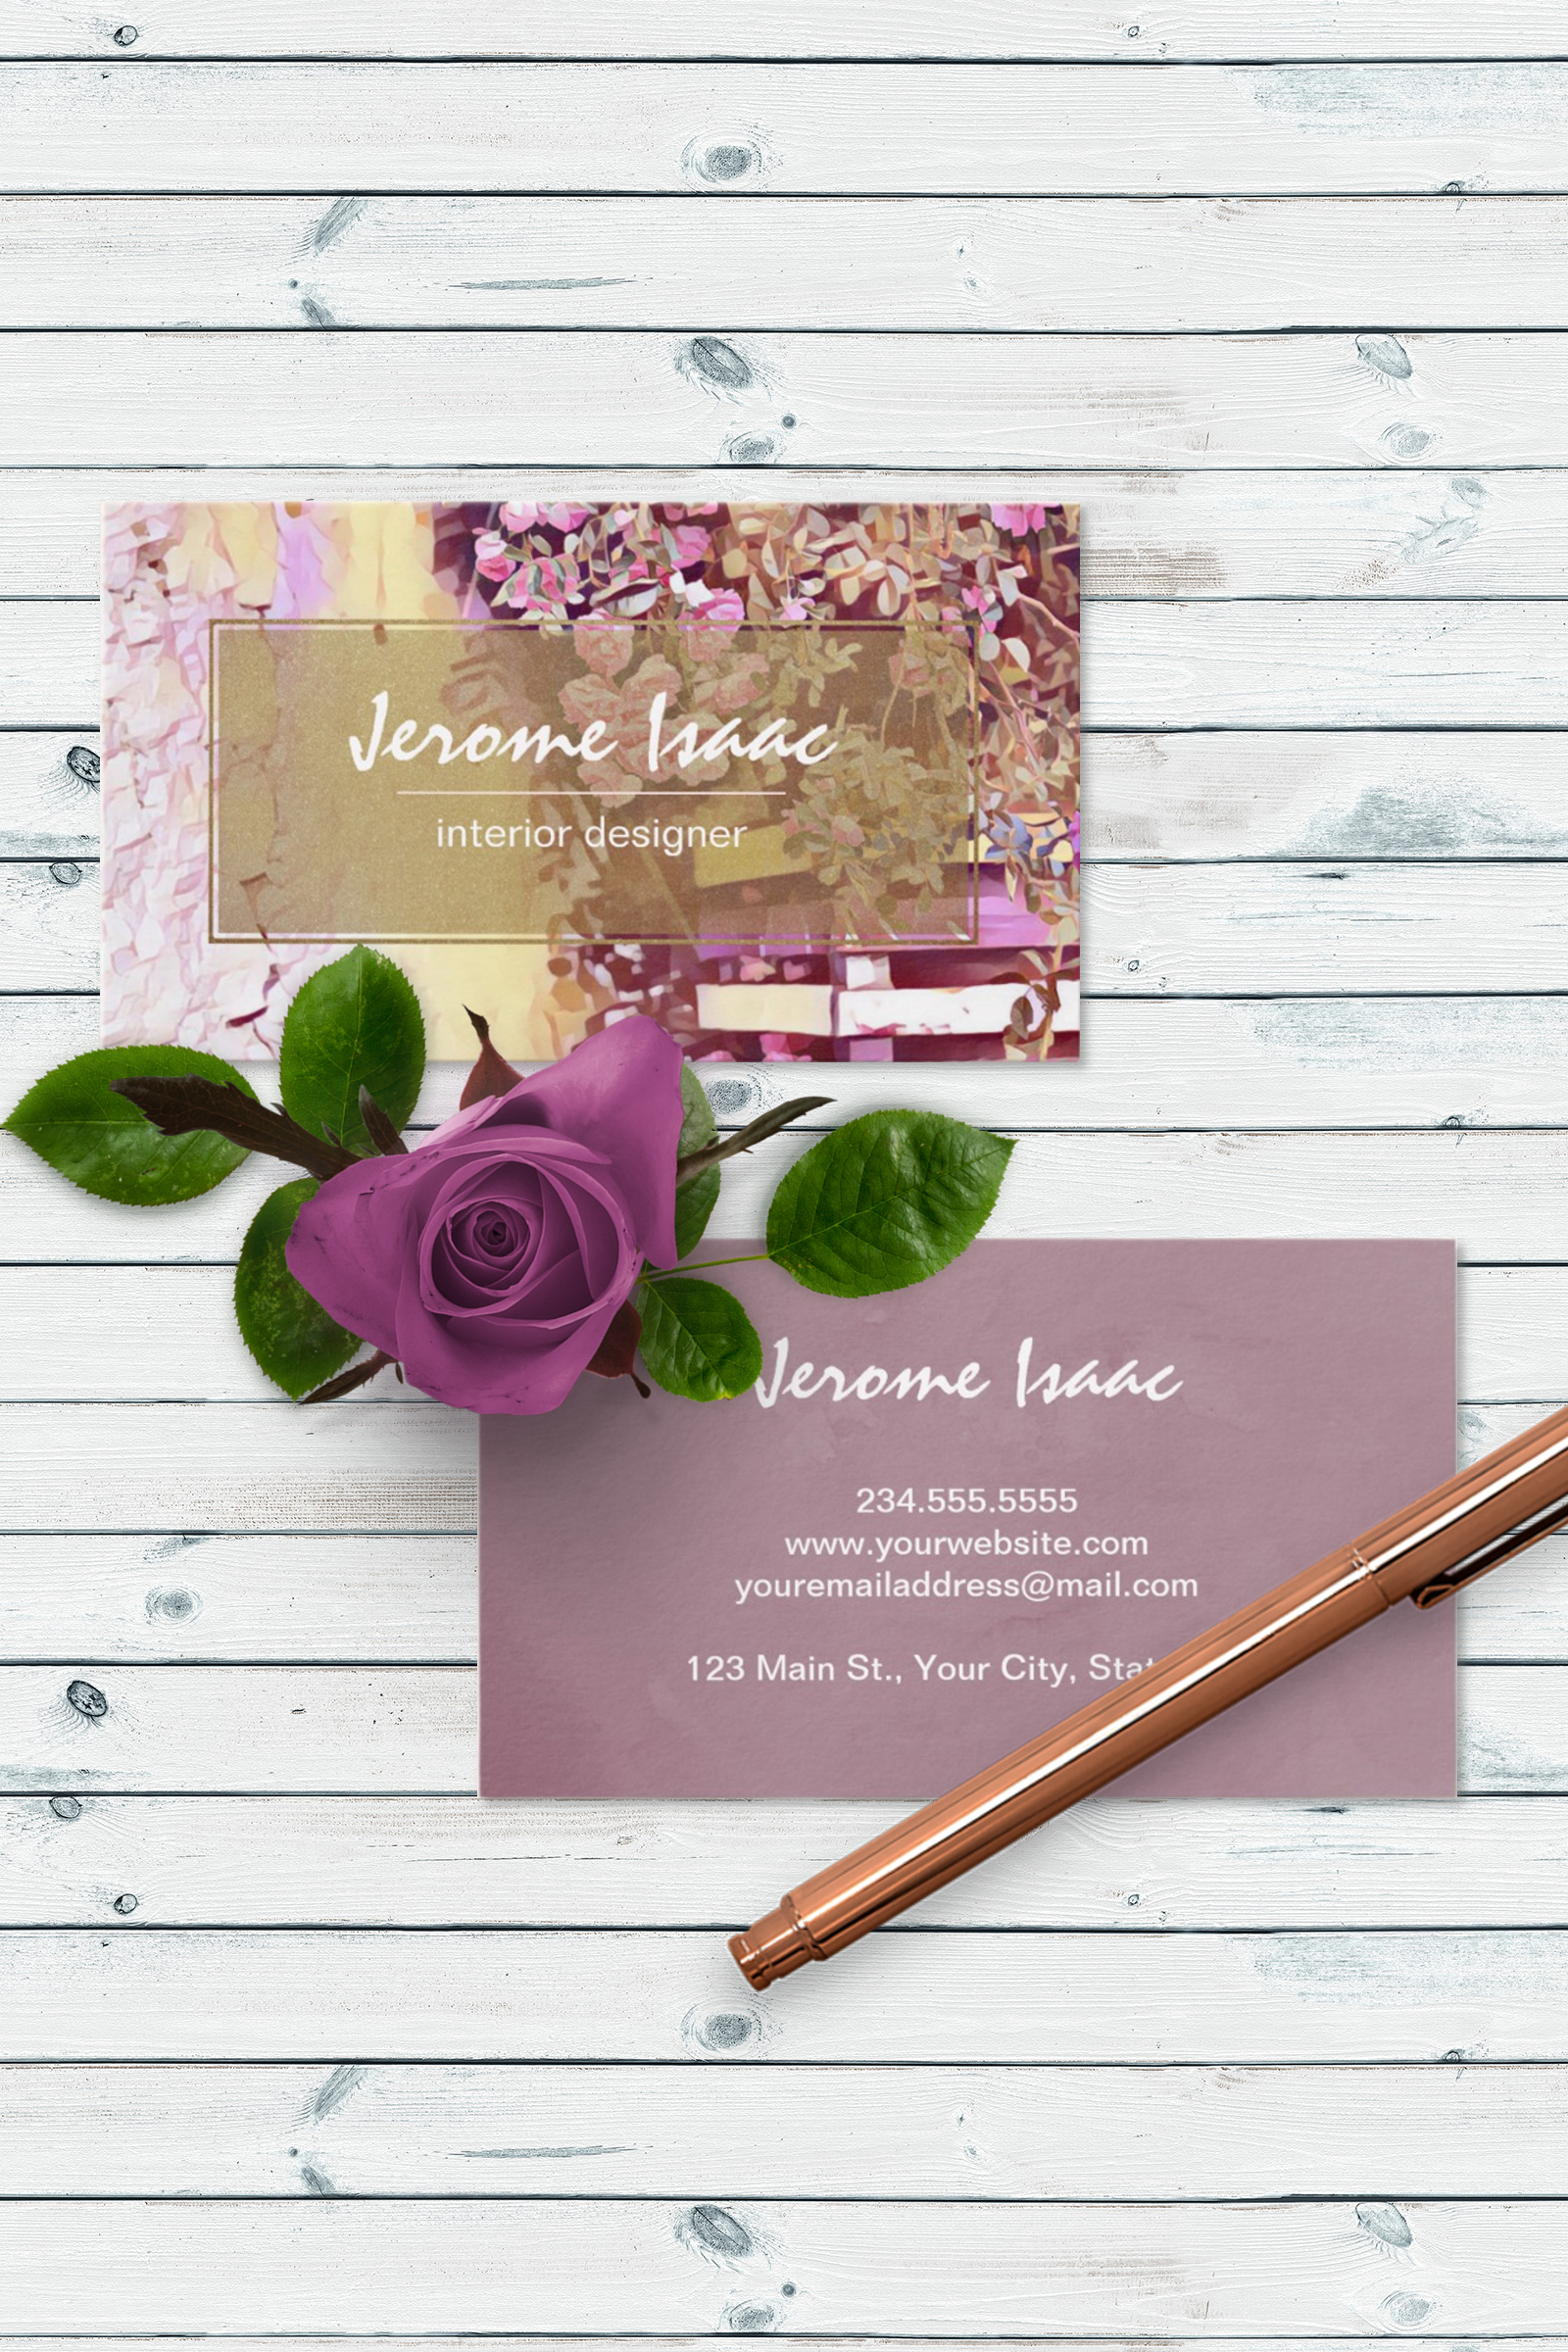 Modern Classy Gorgeous Trendy Chic Business Card Collection Find An Interesting Mi Business Cards Collection Chic Business Card Trendy Business Cards